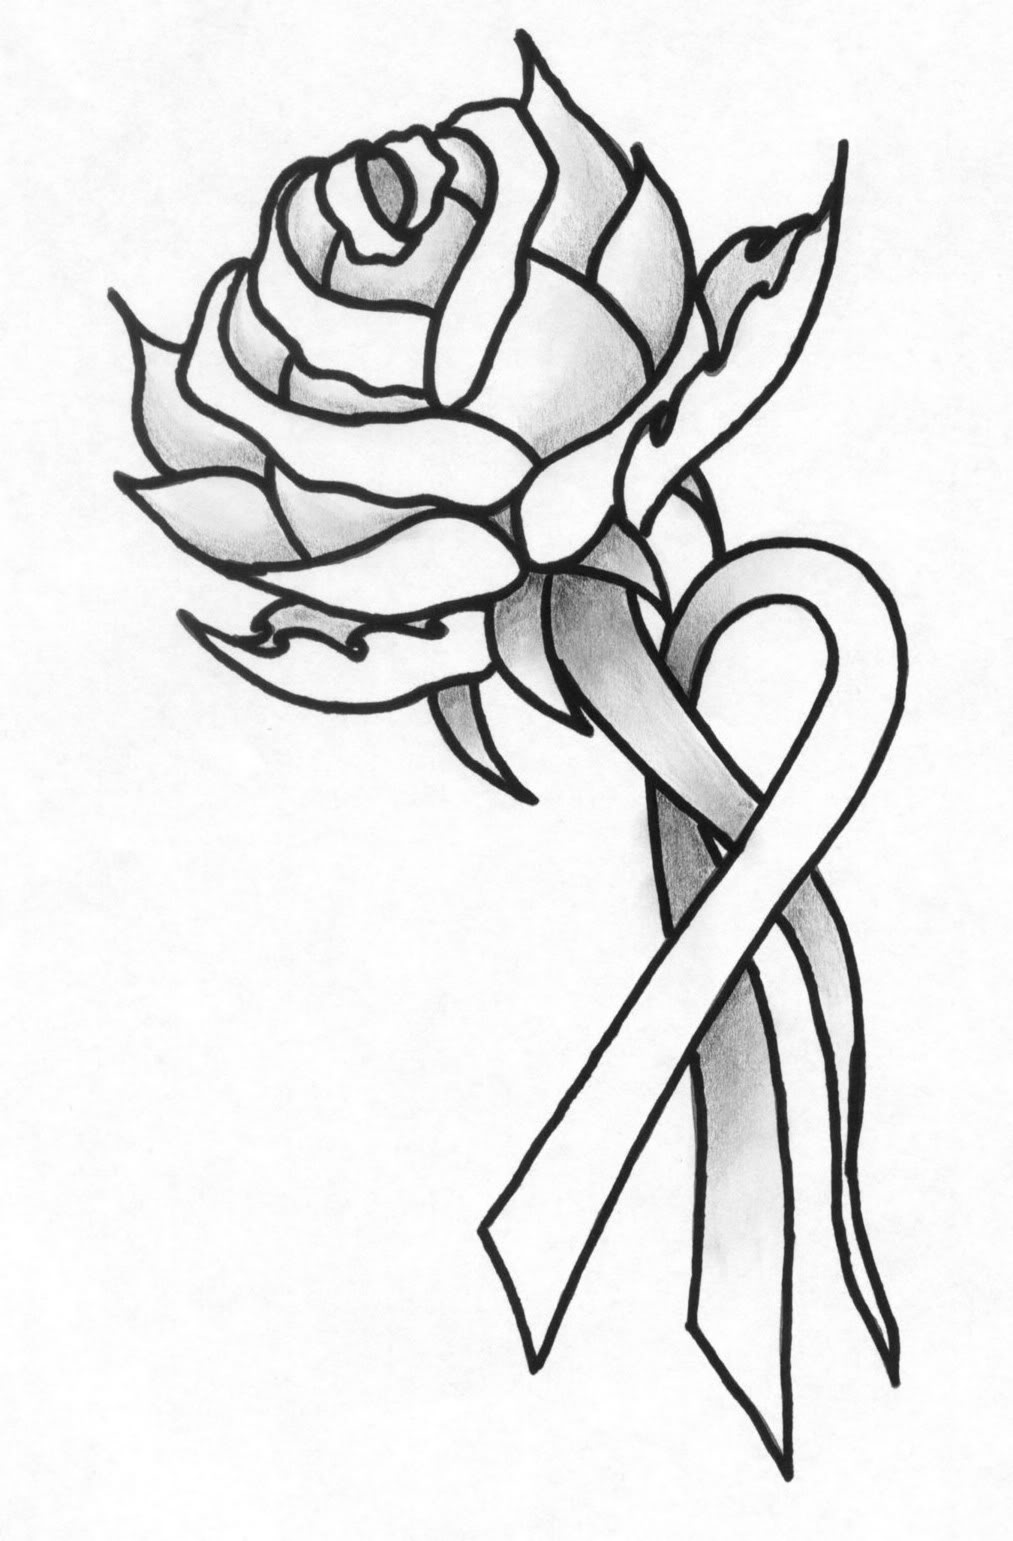 Drawn ribbon rose ribbon Pinterest and rose ribbon ribbon